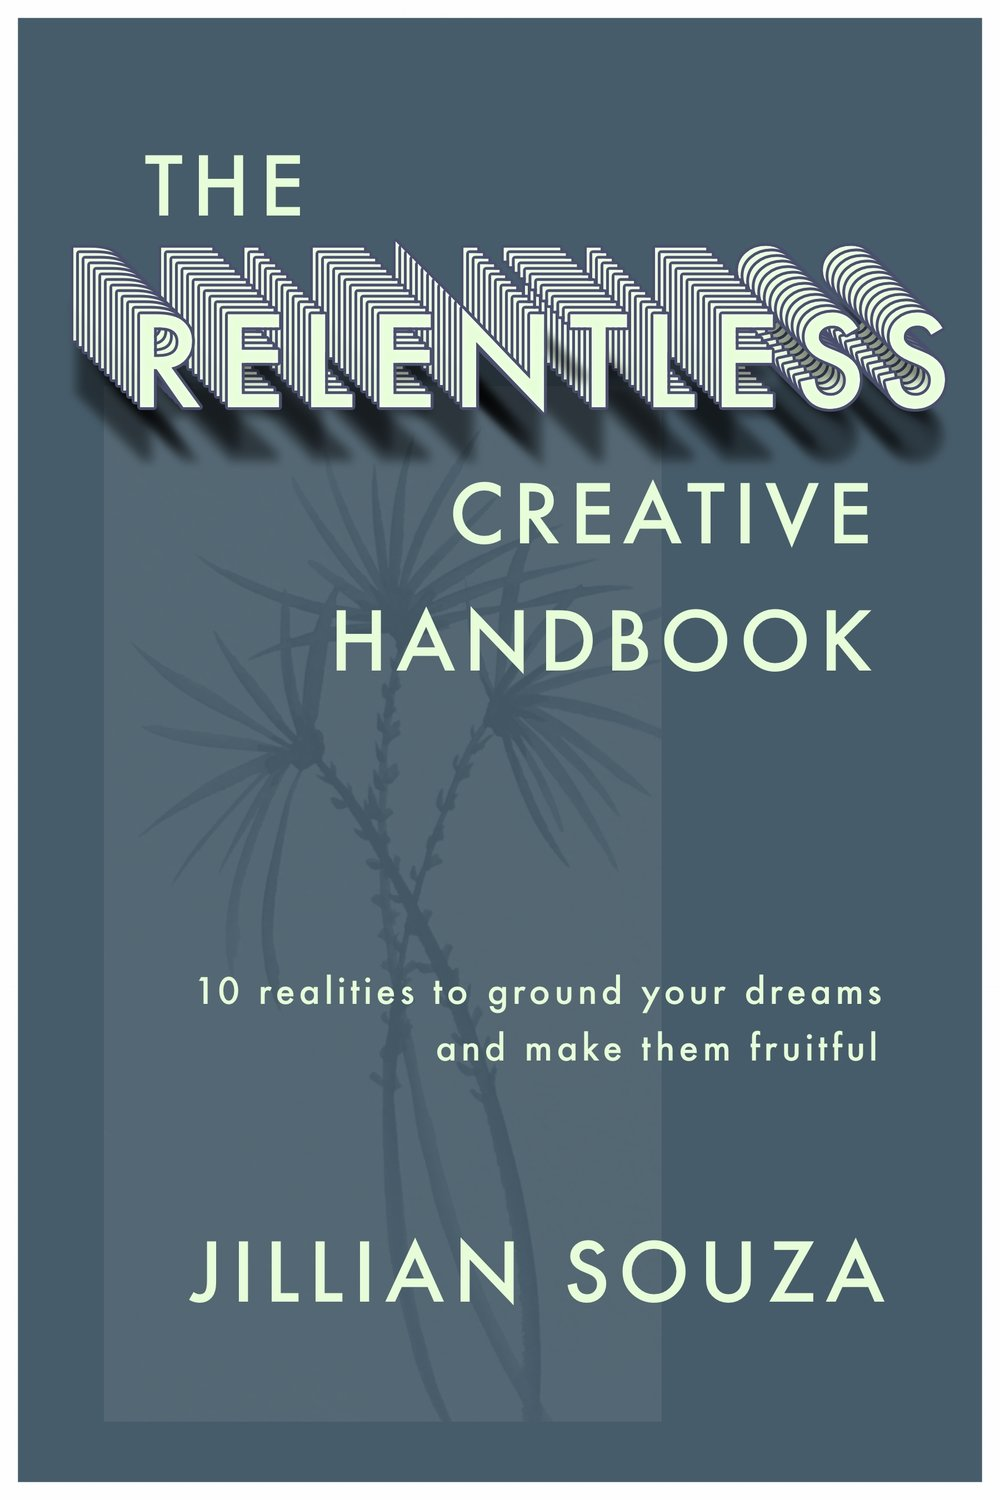 relentless book cover blue poofs.jpg